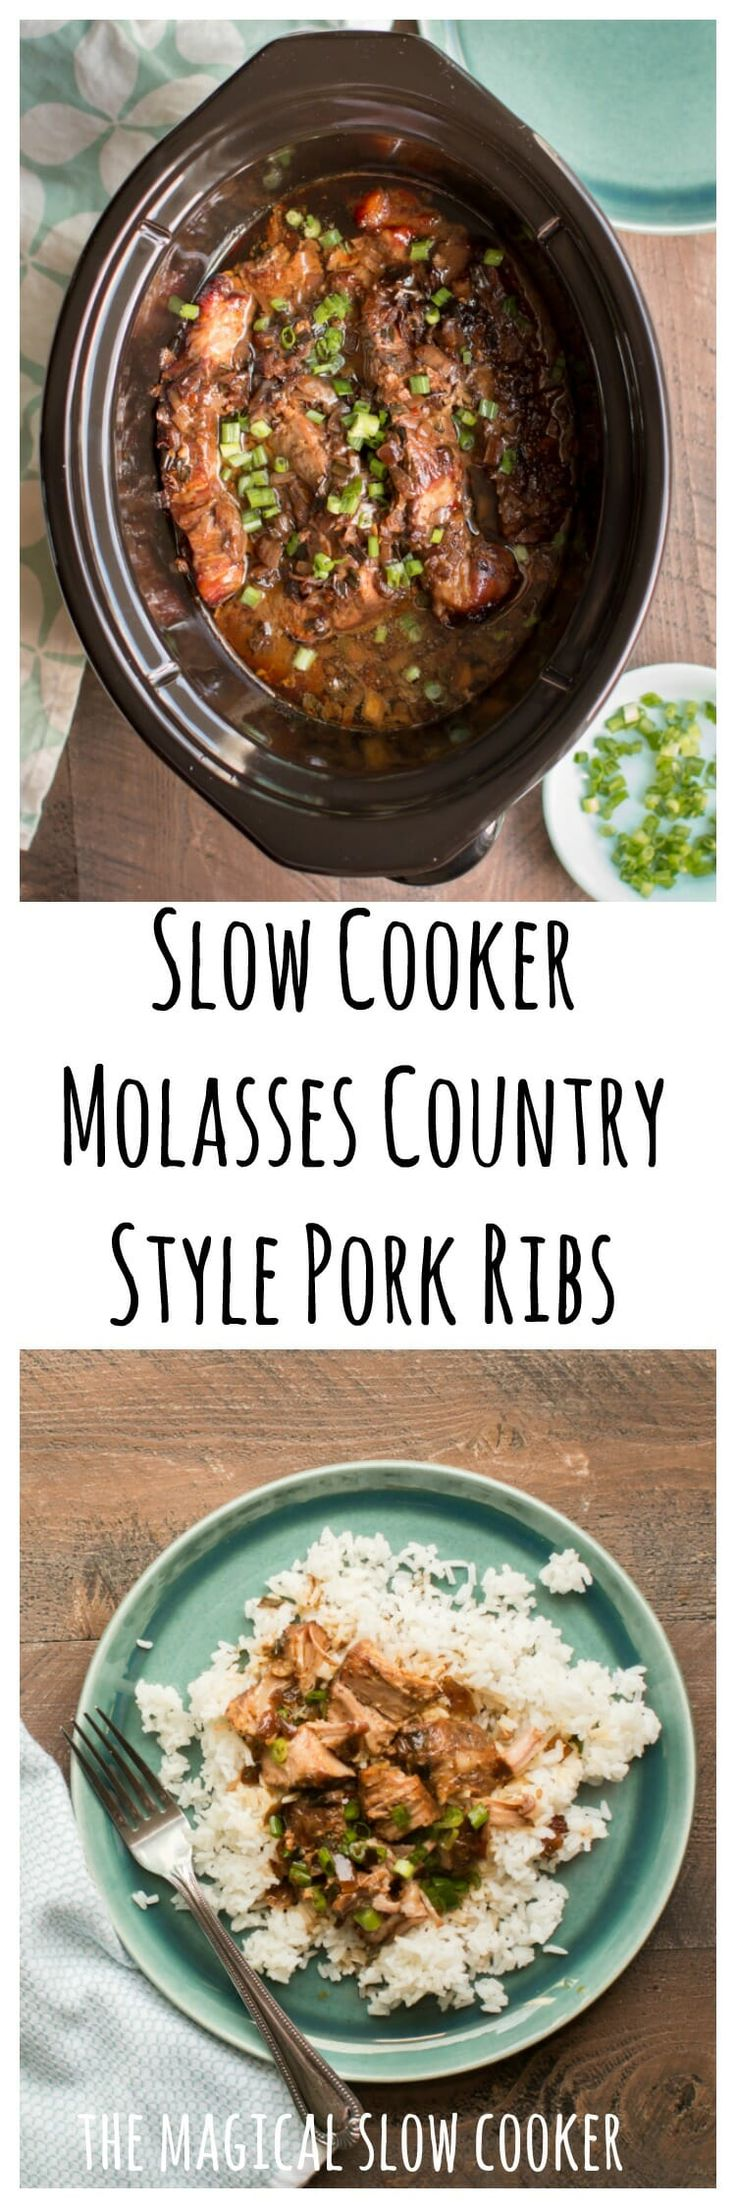 Slow Cooker Molasses Country Style Pork Ribs #crockpot #slowcooker #ribs